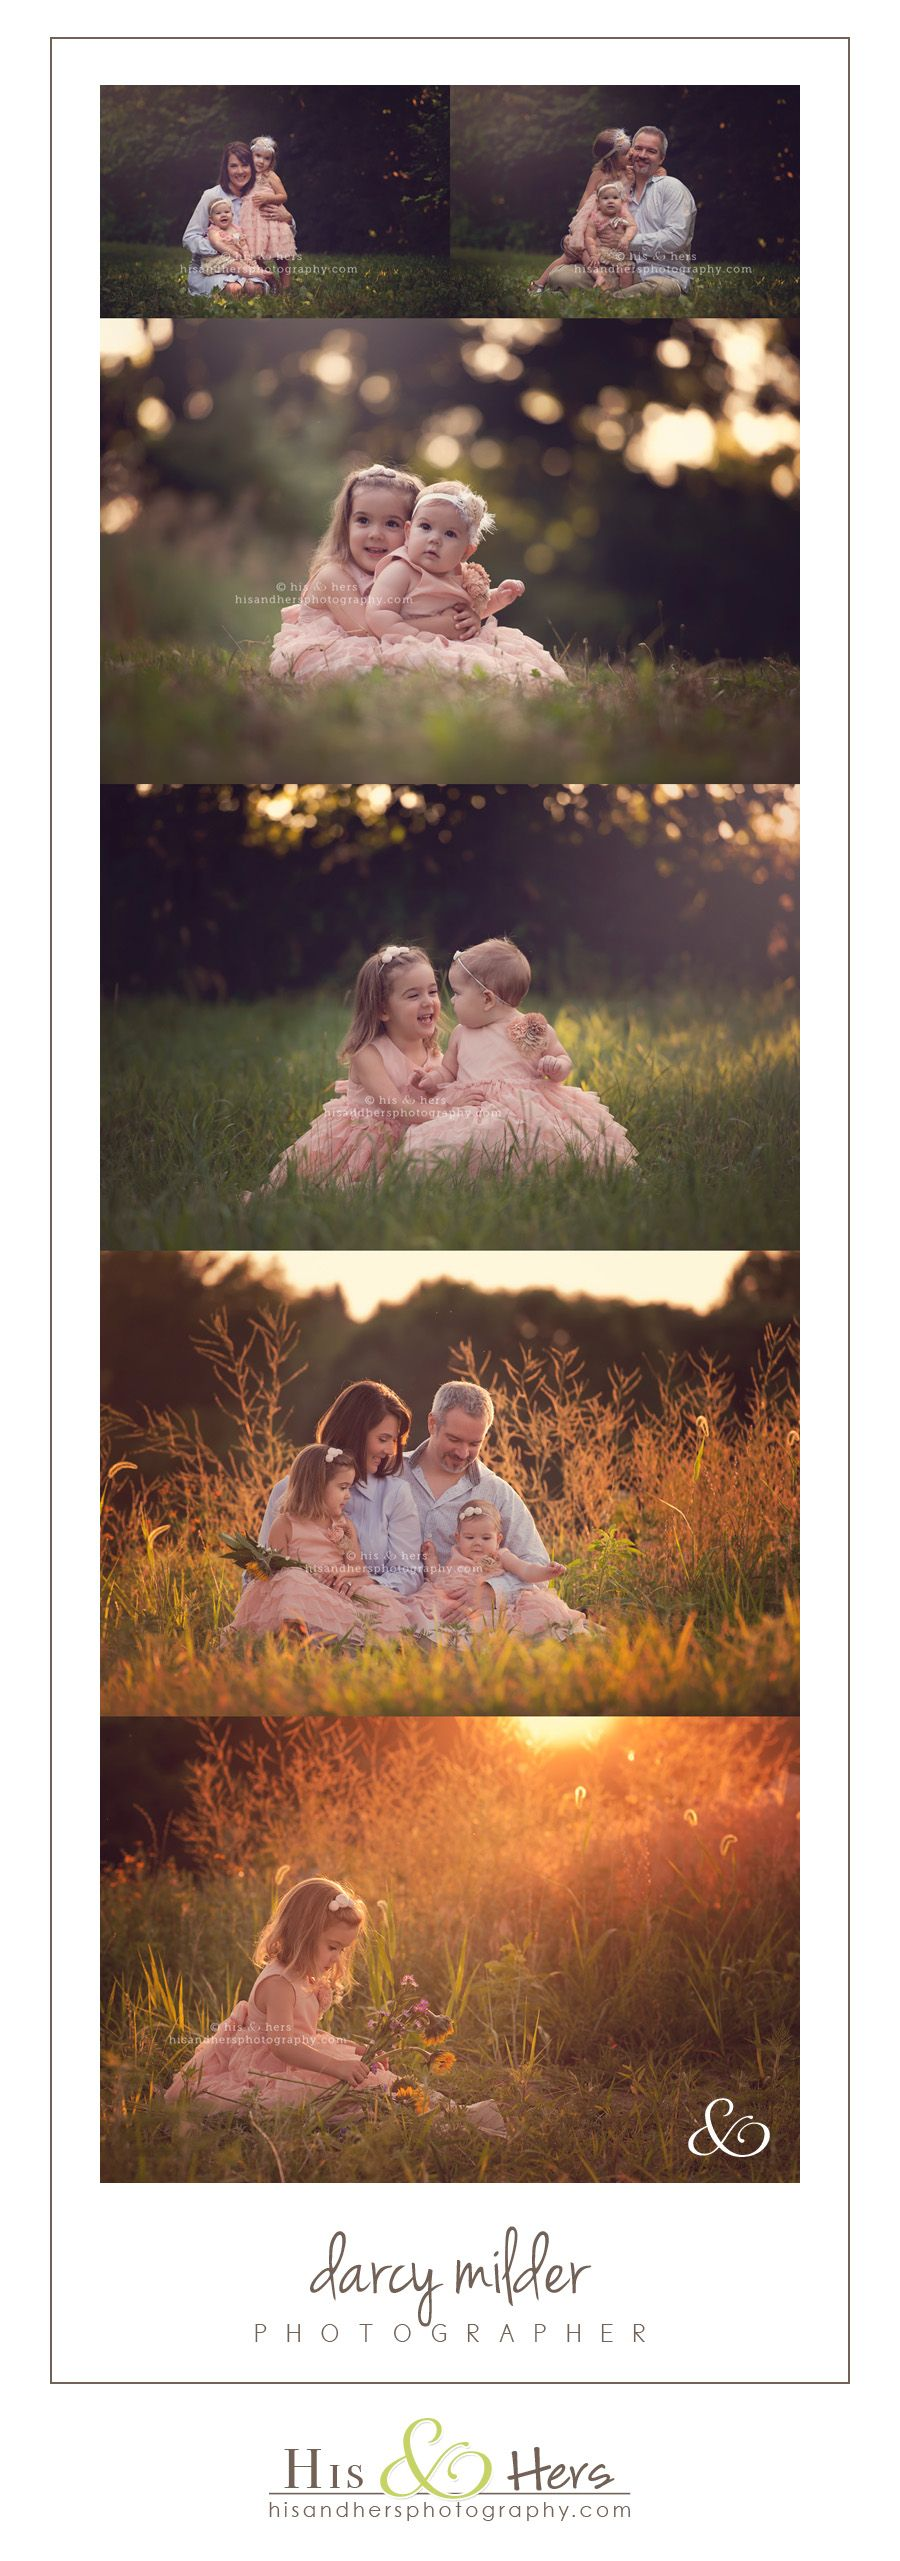 Family | Matthew & Rachel + girls, Des Moines, Iowa Family Photographer